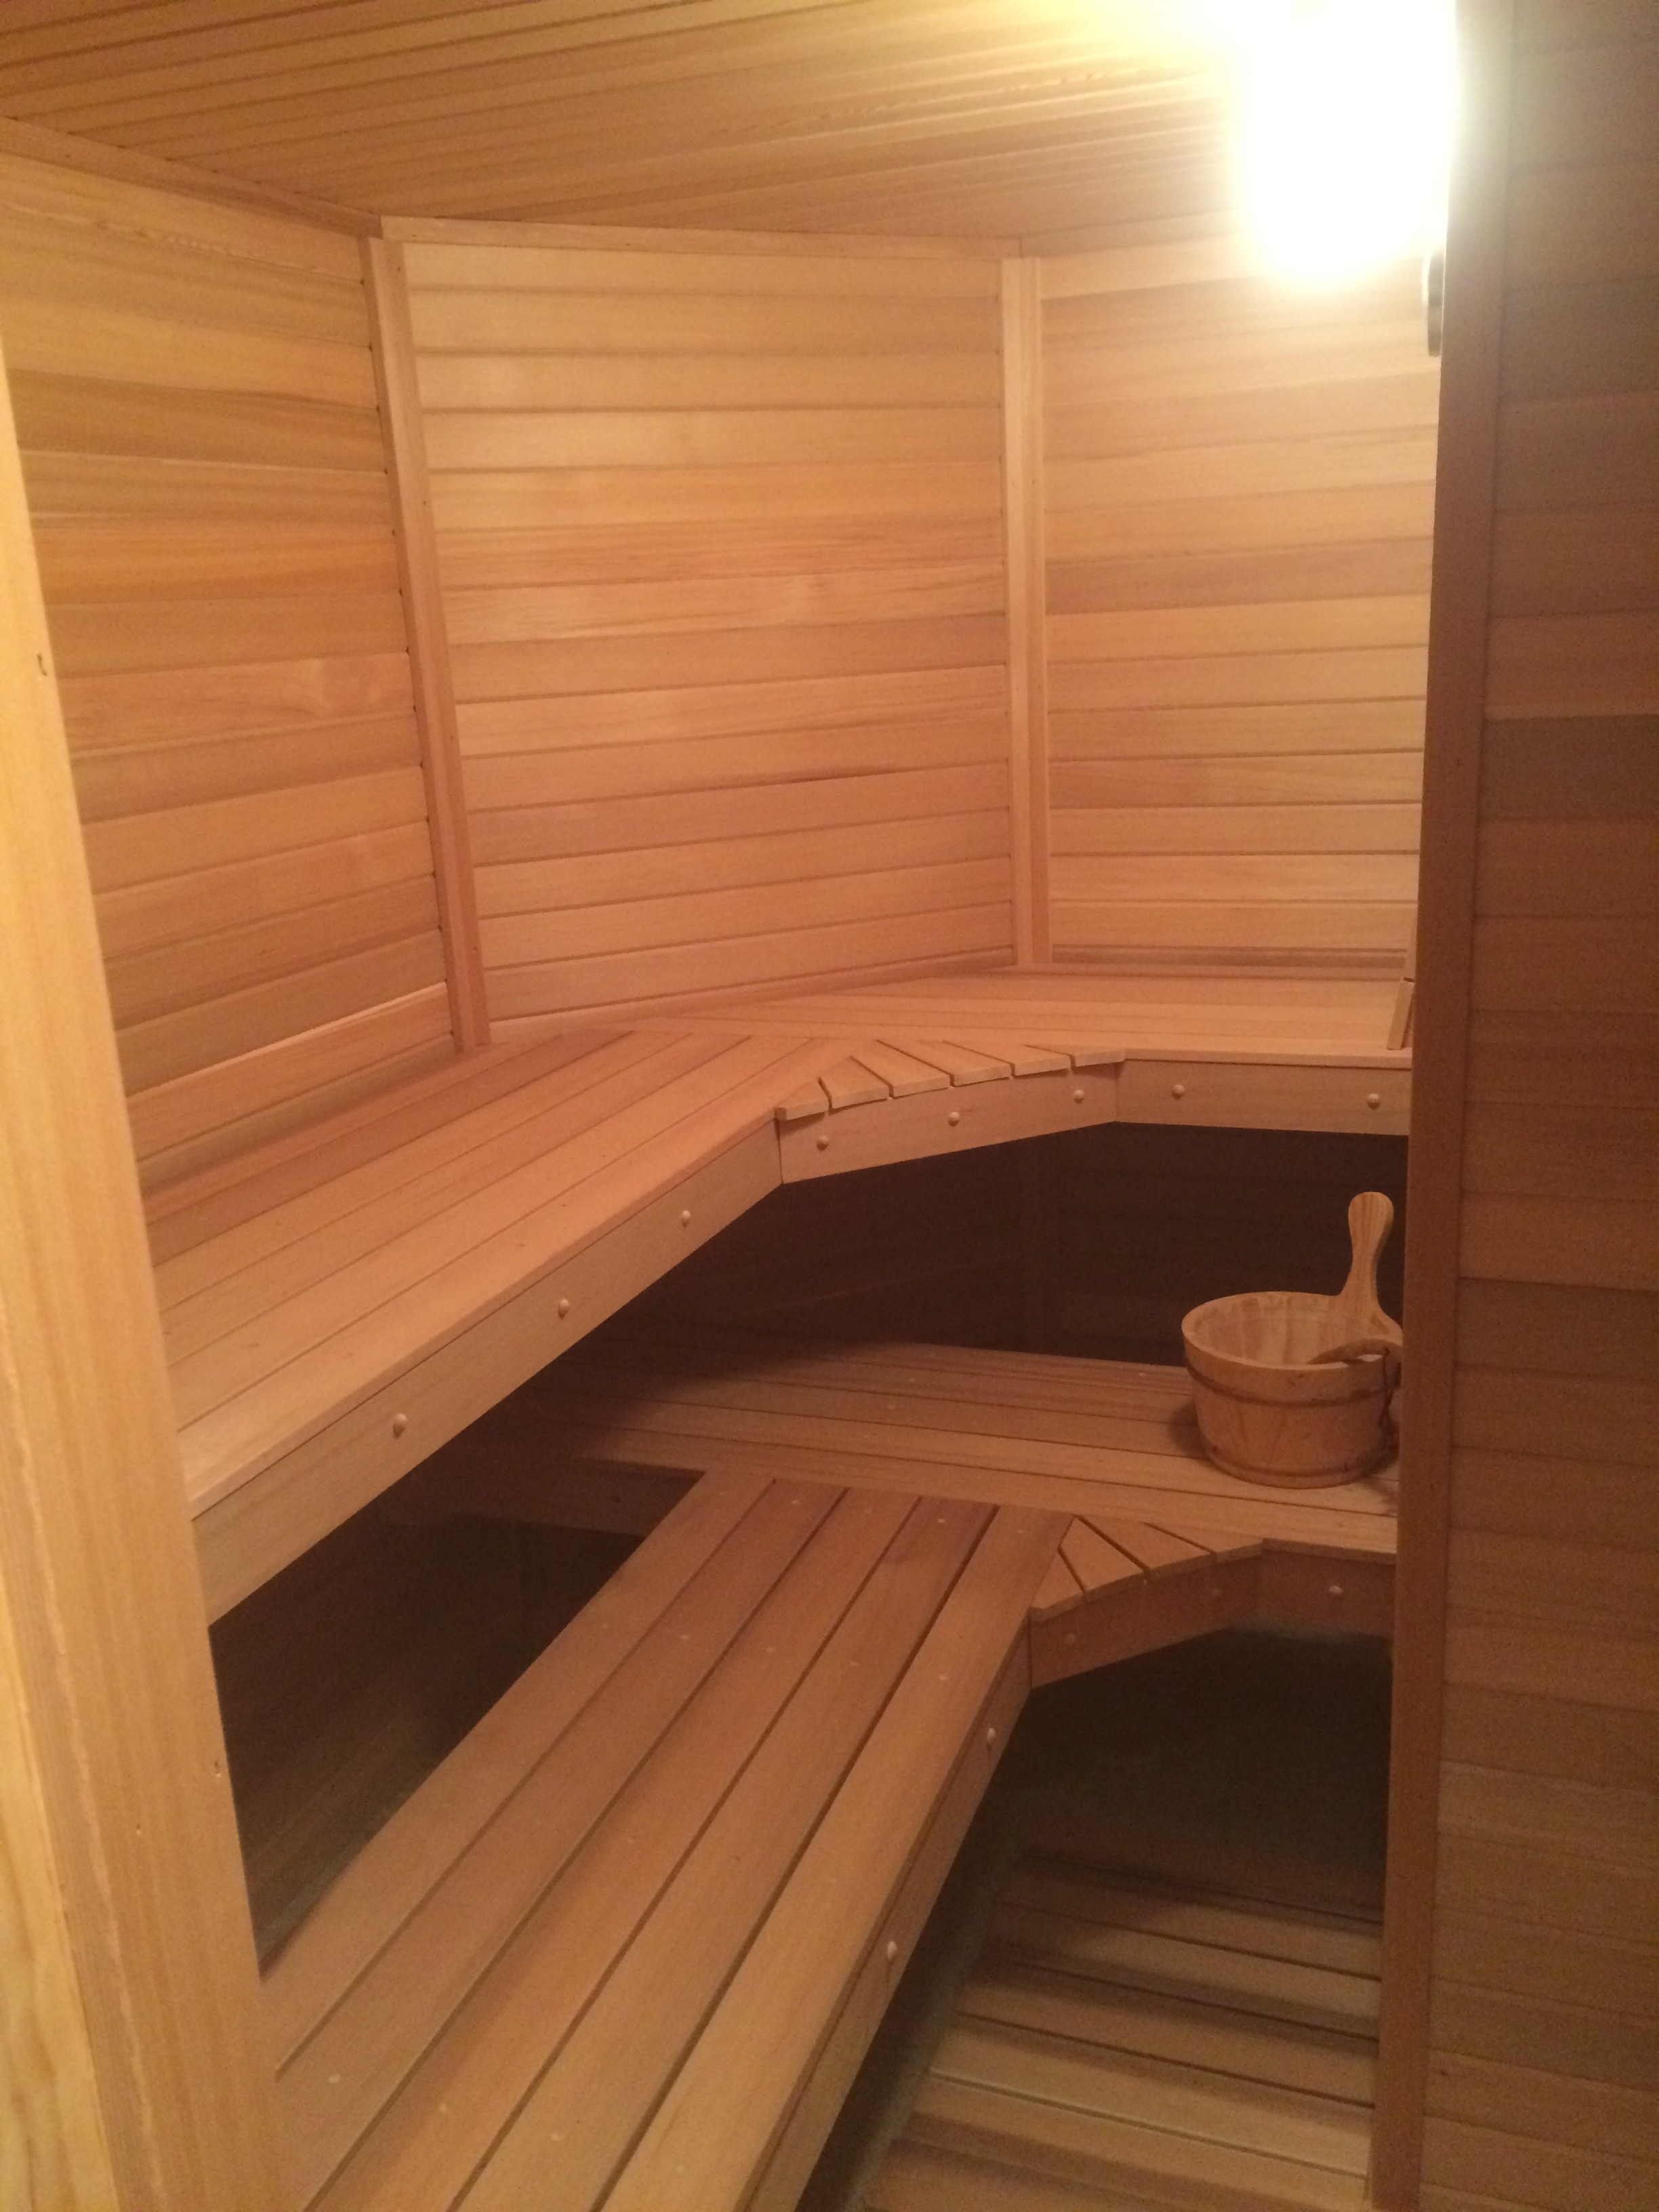 Home sauna kits installed or shipped peterson sauna for Home sauna plans